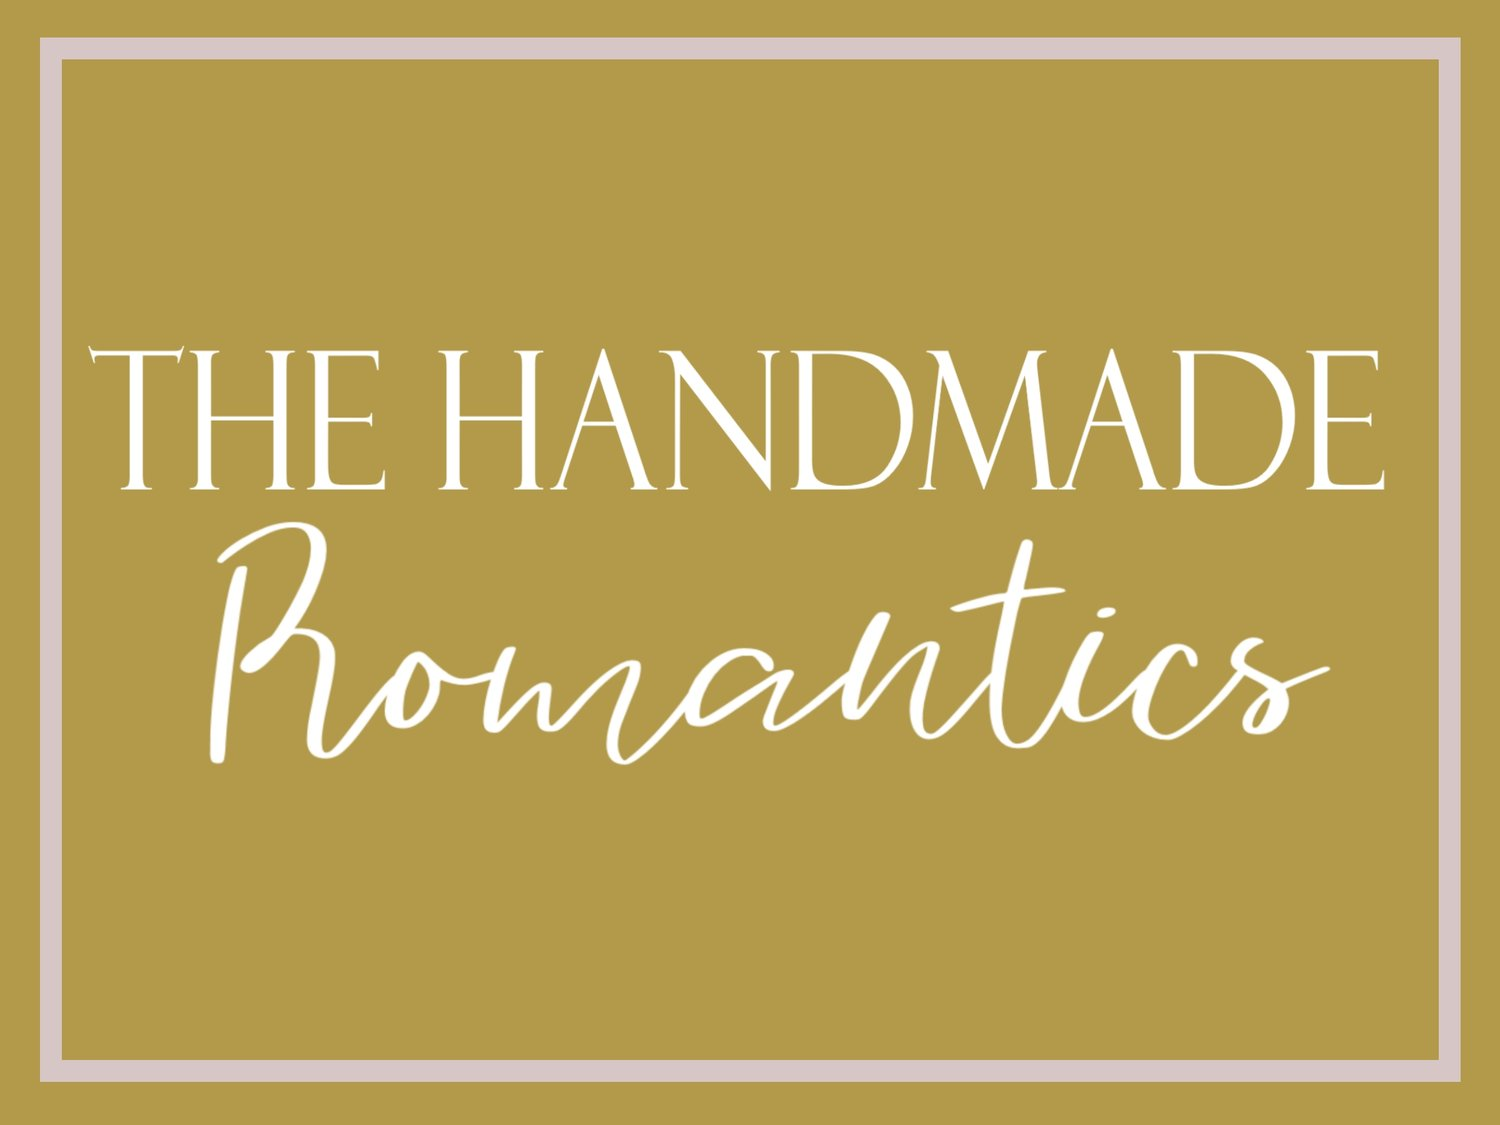 The Handmade Romantics